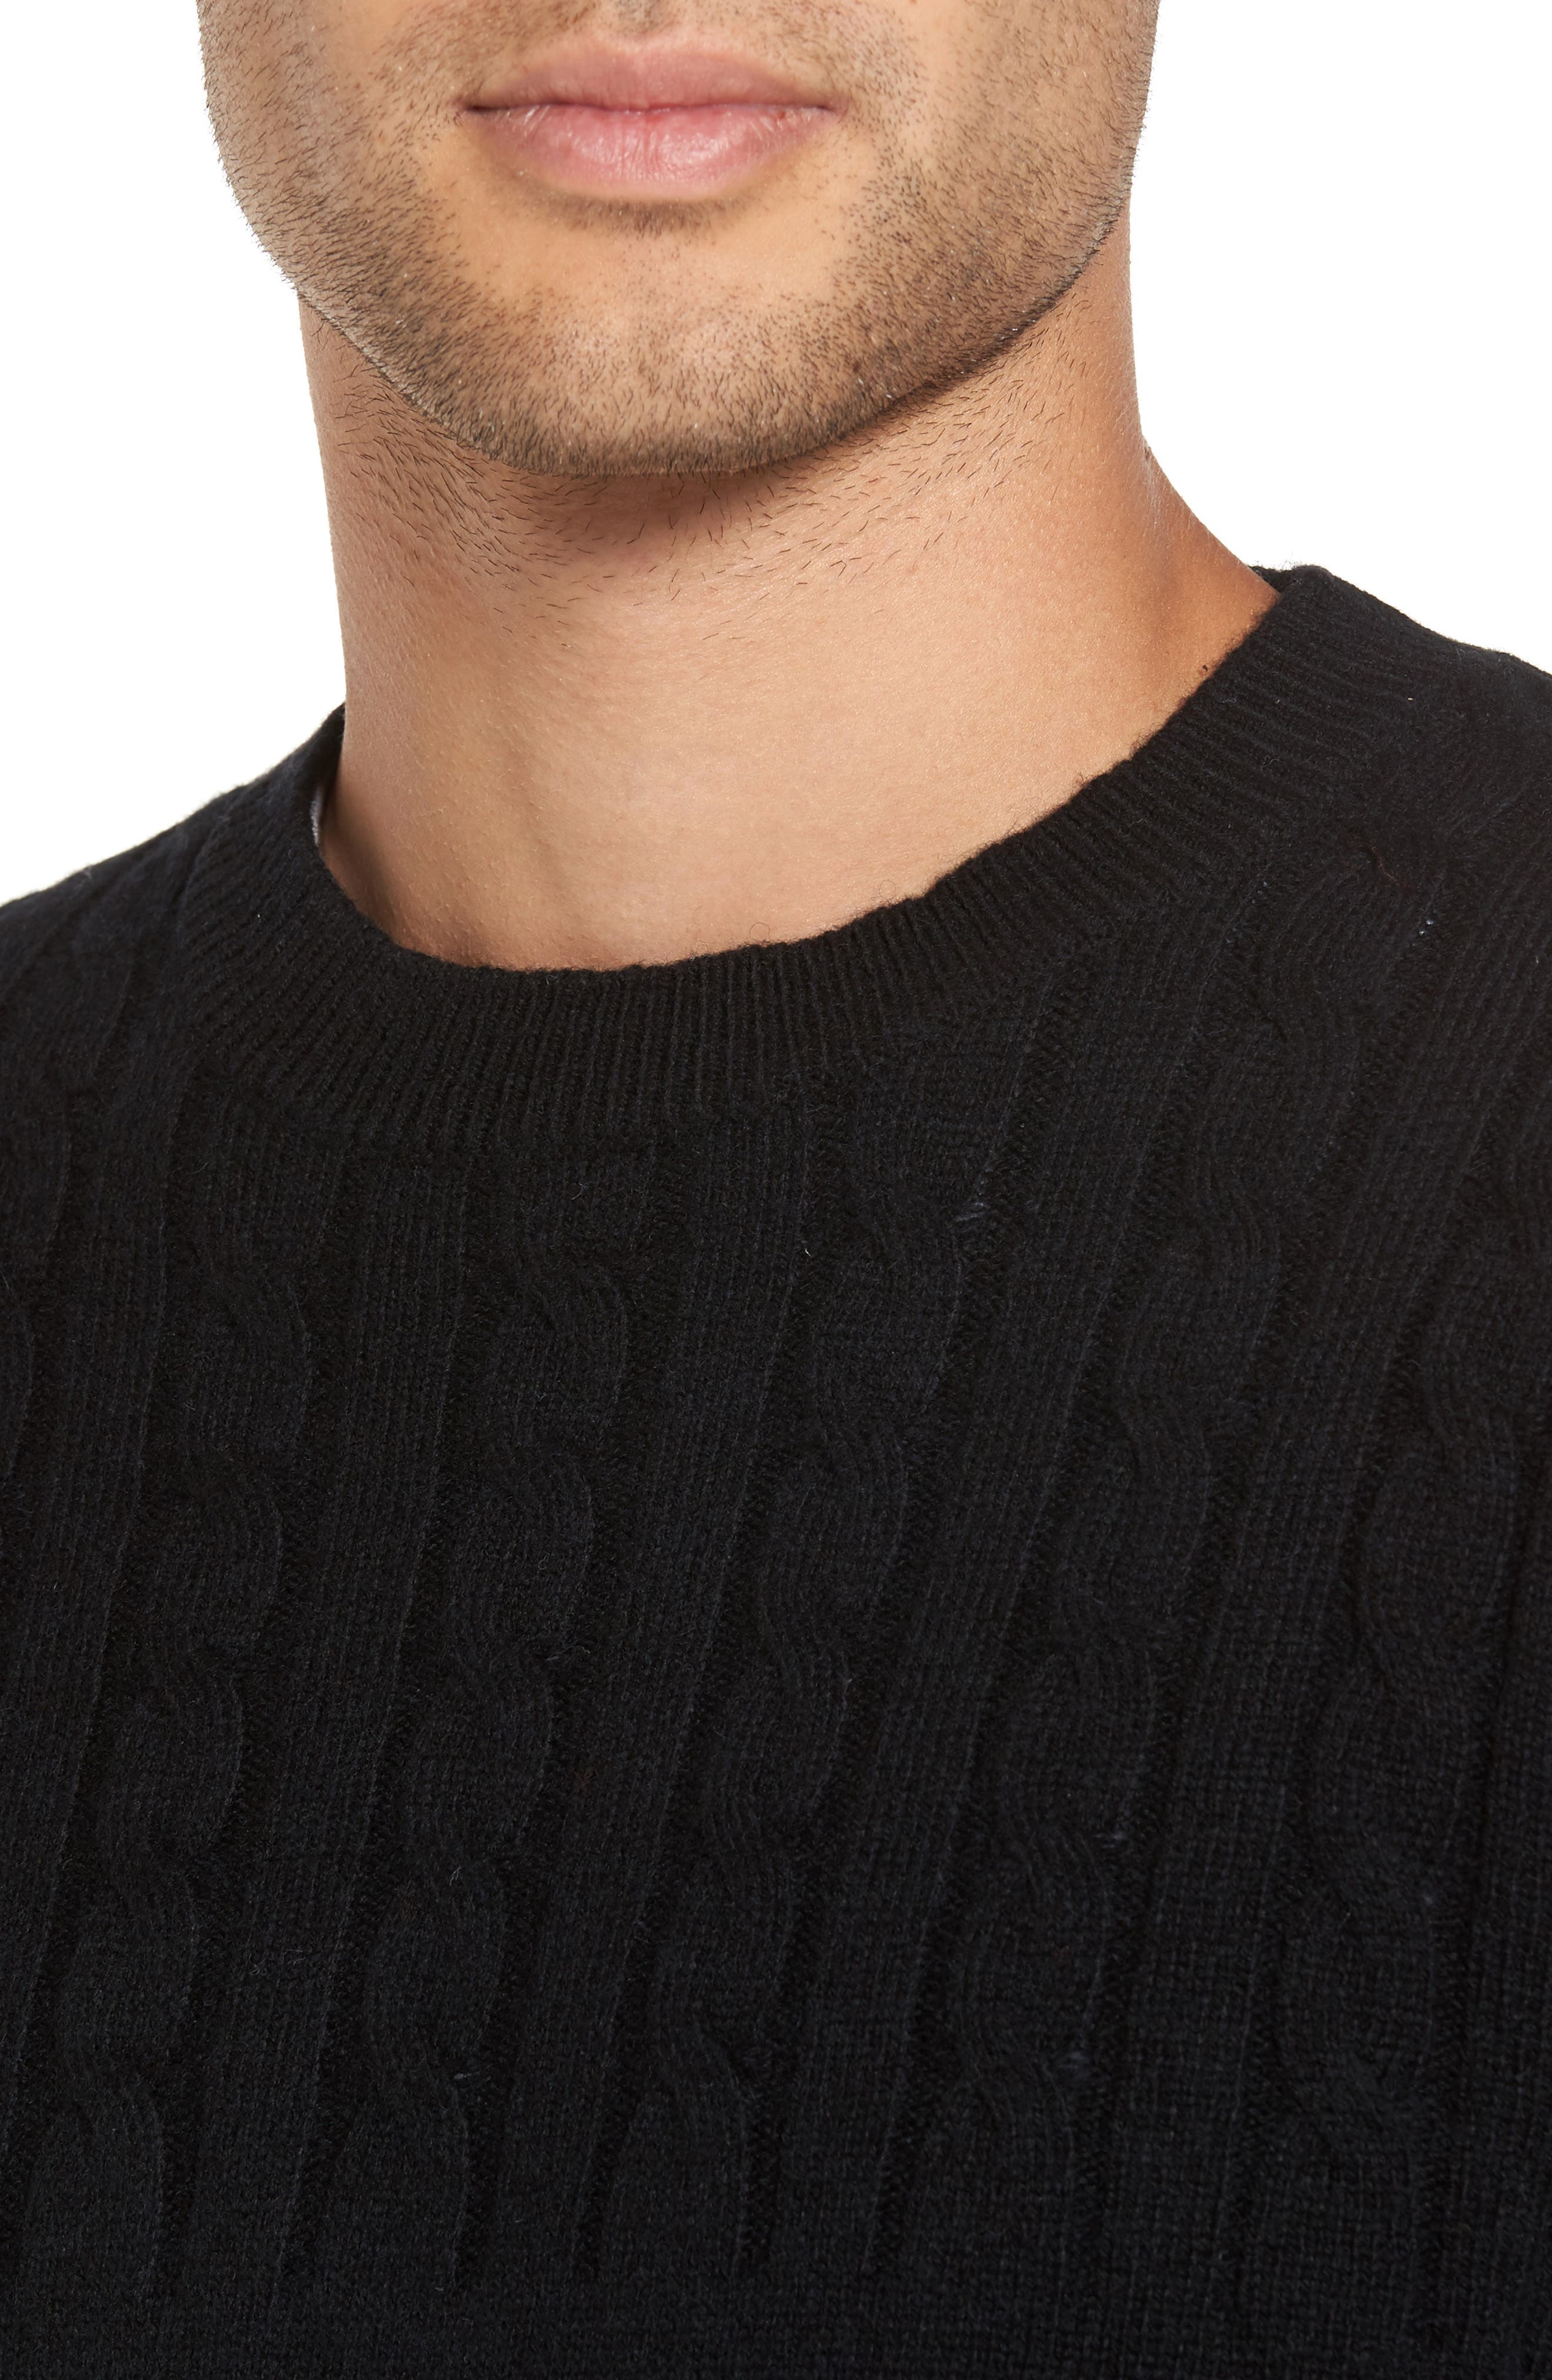 Wool Cable Knit Sweater,                             Alternate thumbnail 4, color,                             Black